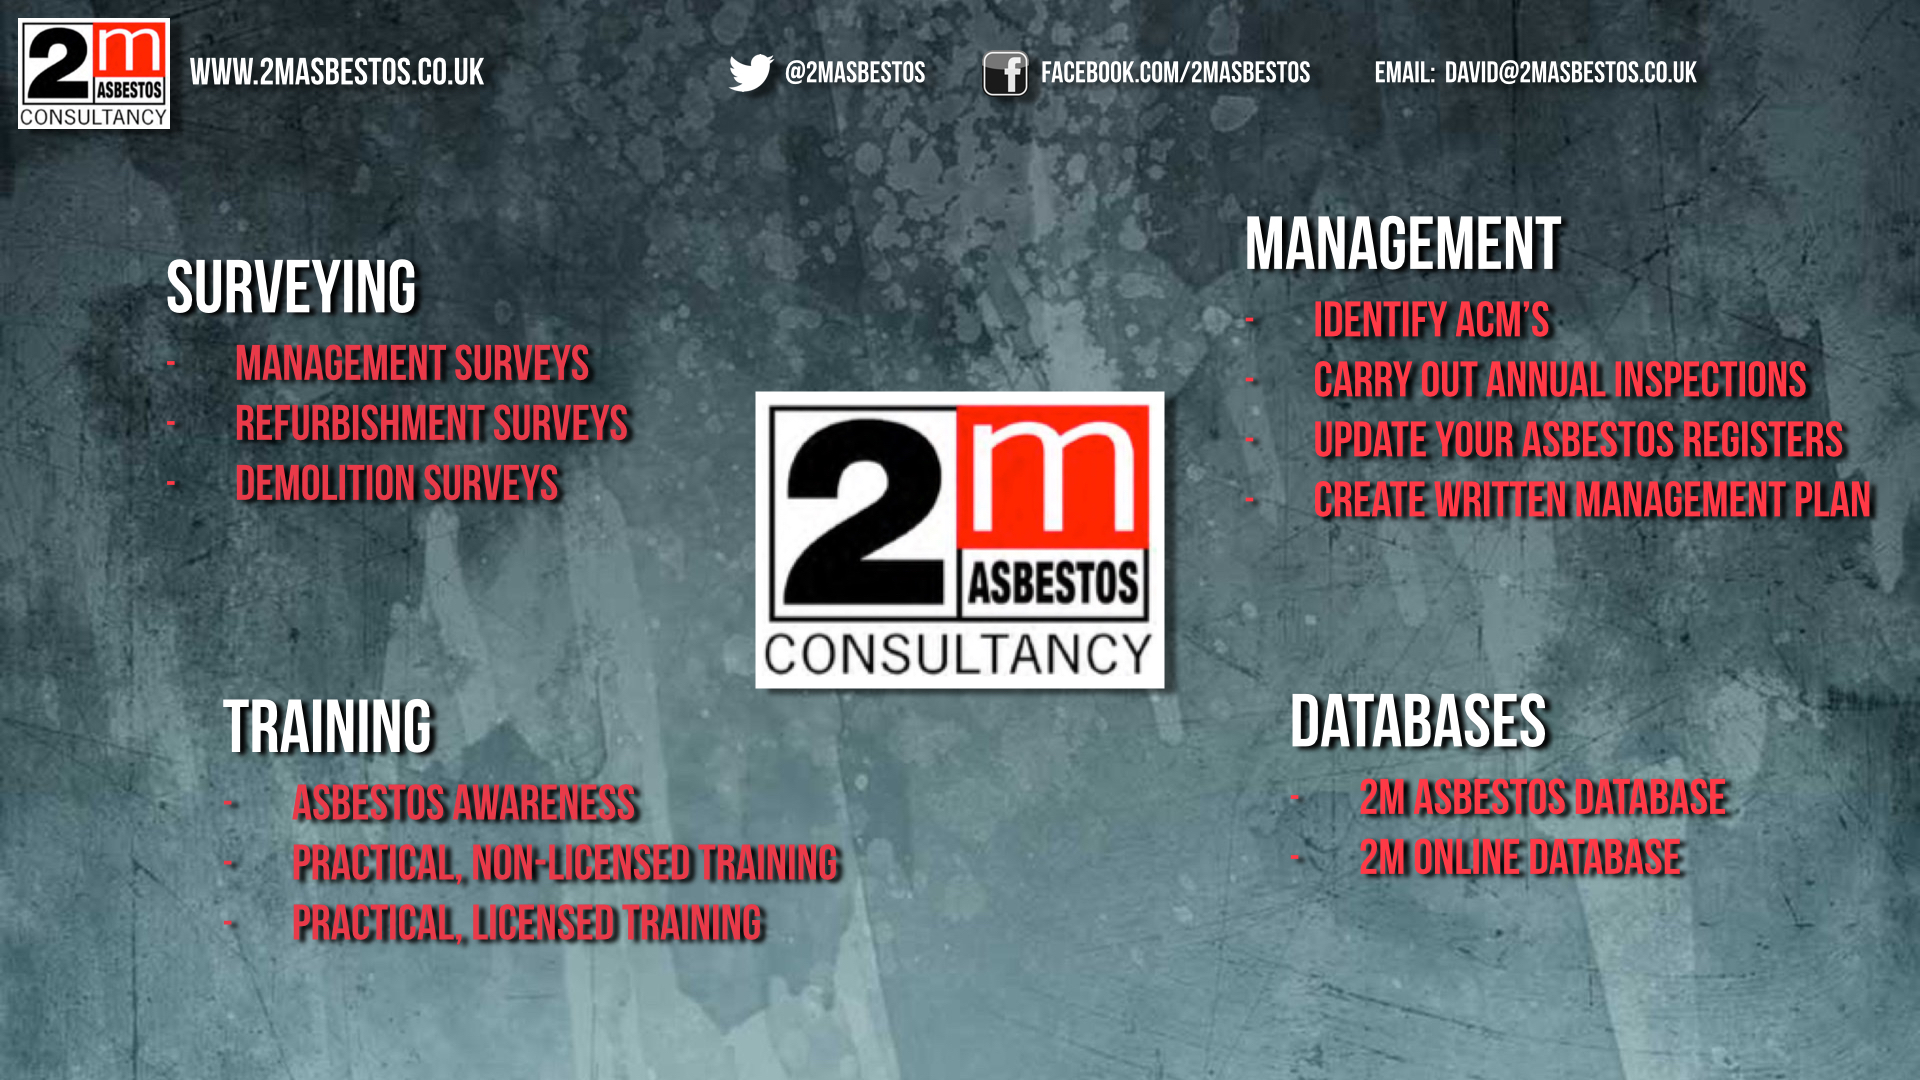 2M Asbestos Survey Management Training Databases